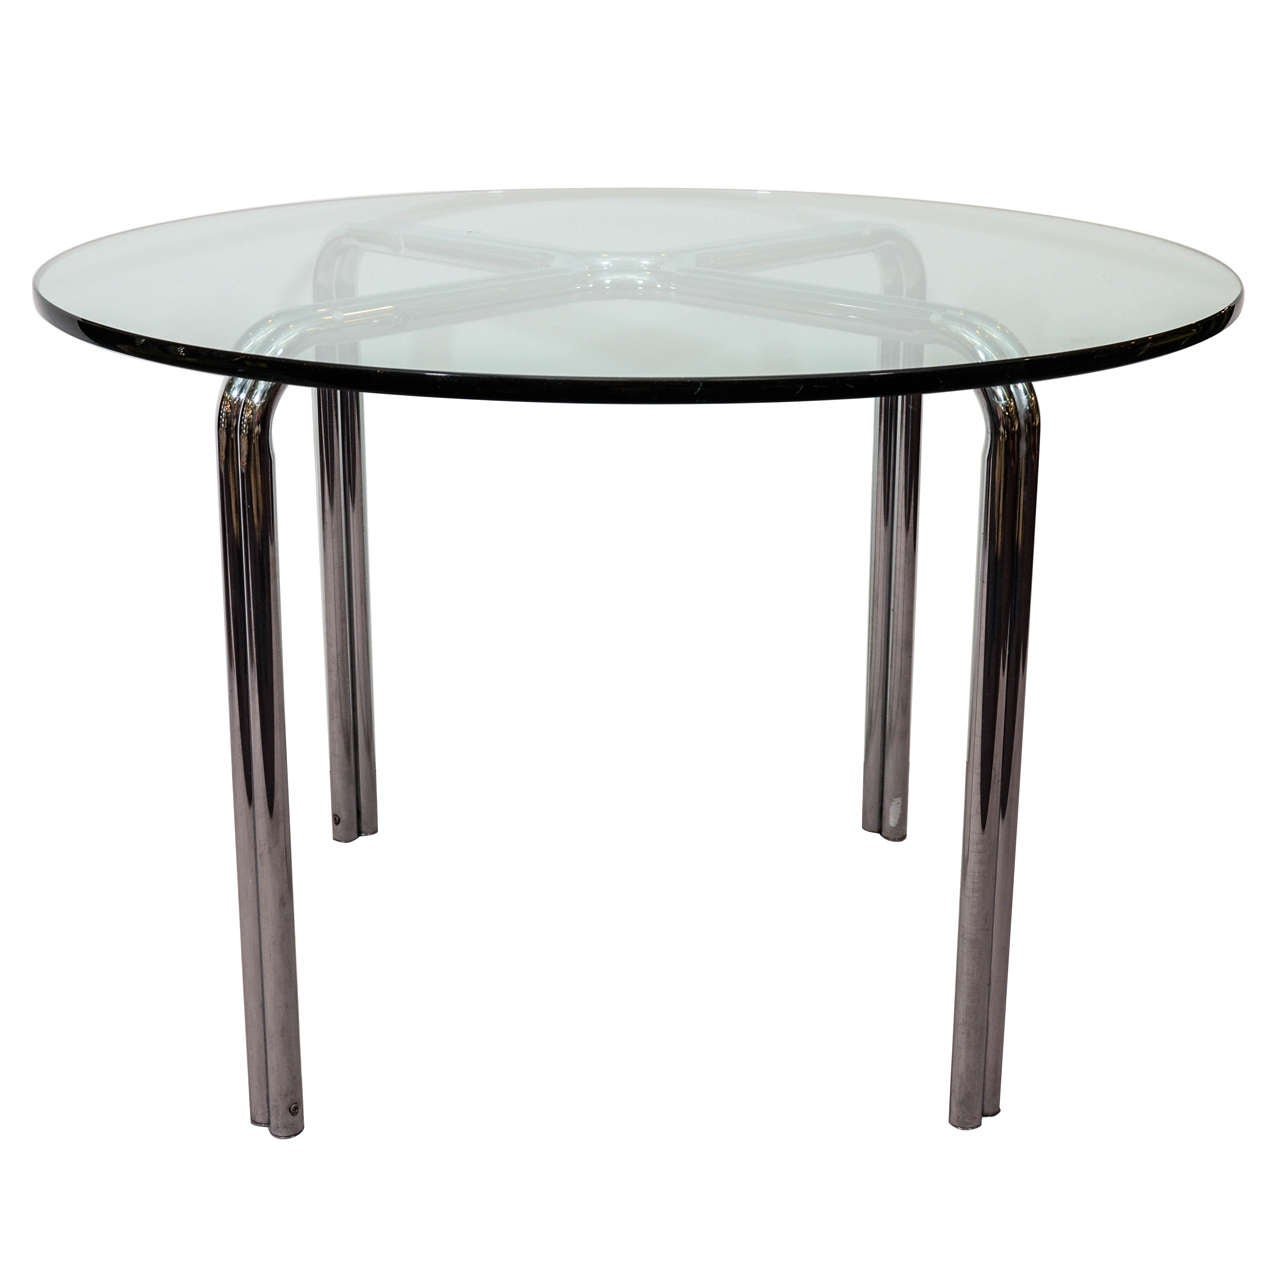 Mid century dining table with circular glass top and for Dining table base